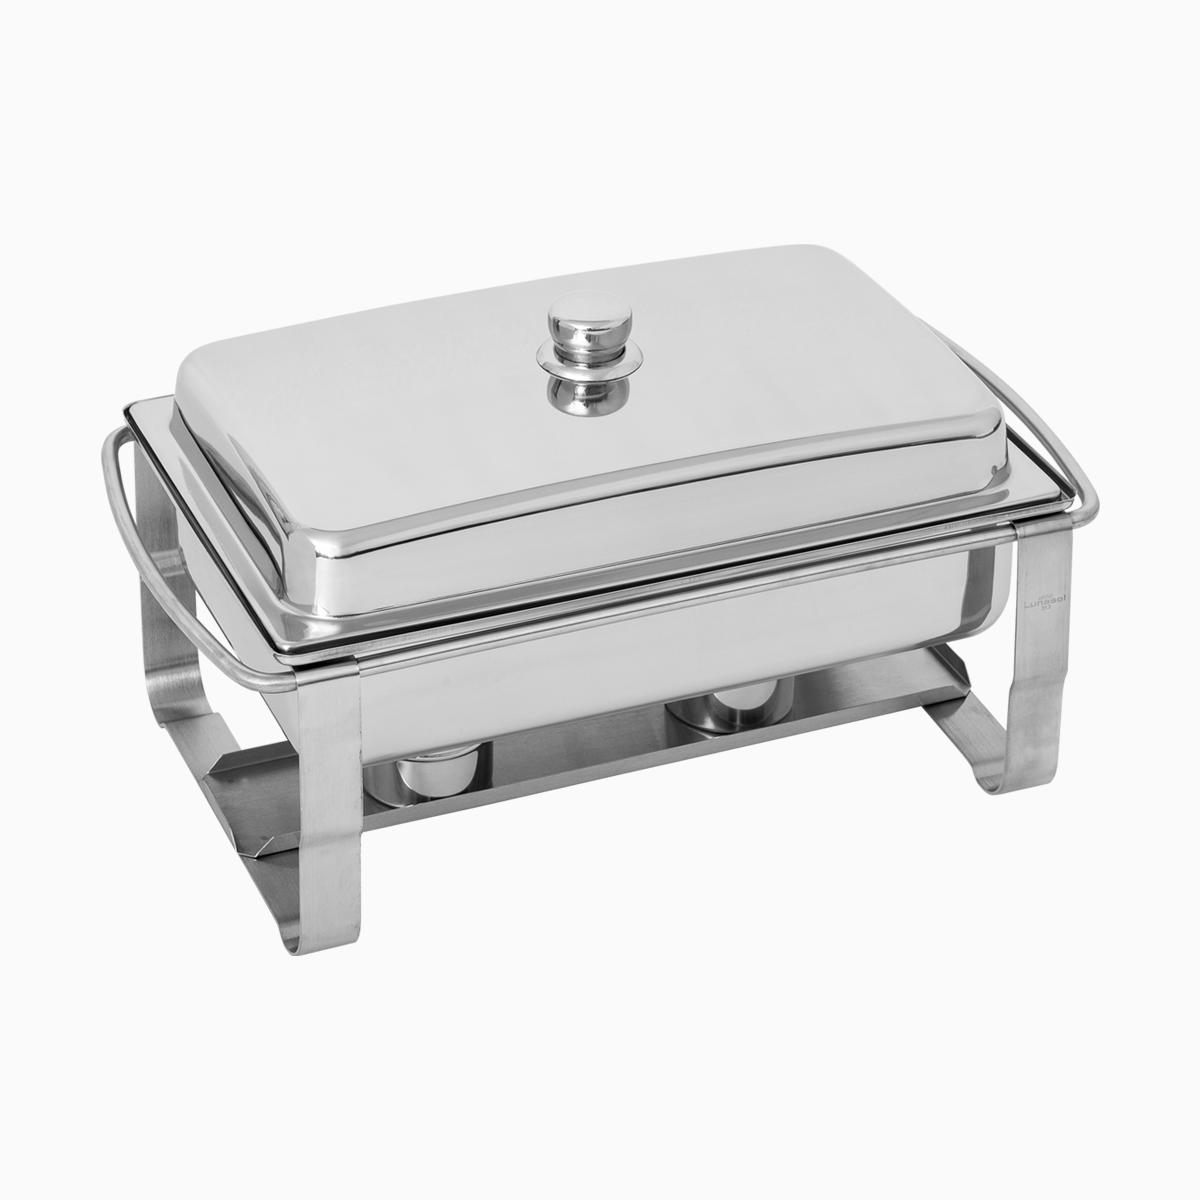 Chafing dish Full Size